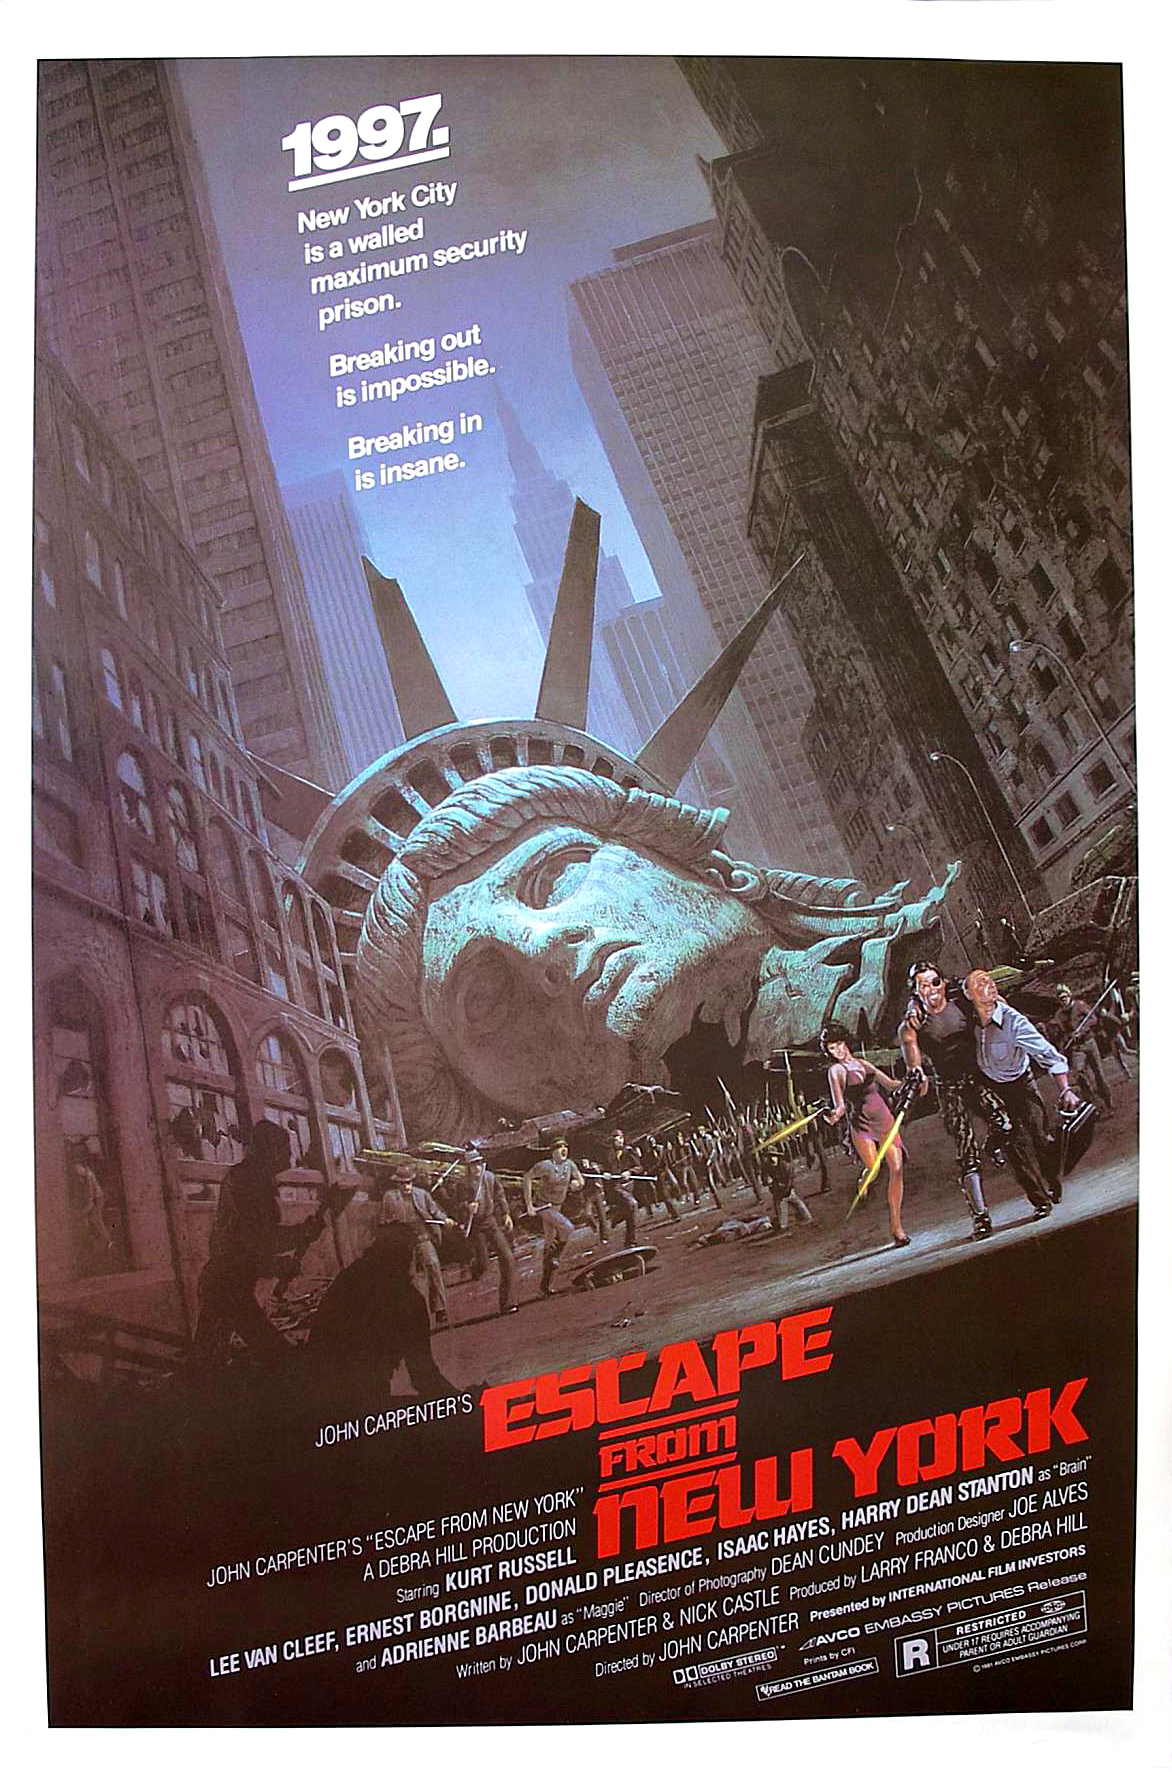 Escape de Nueva York